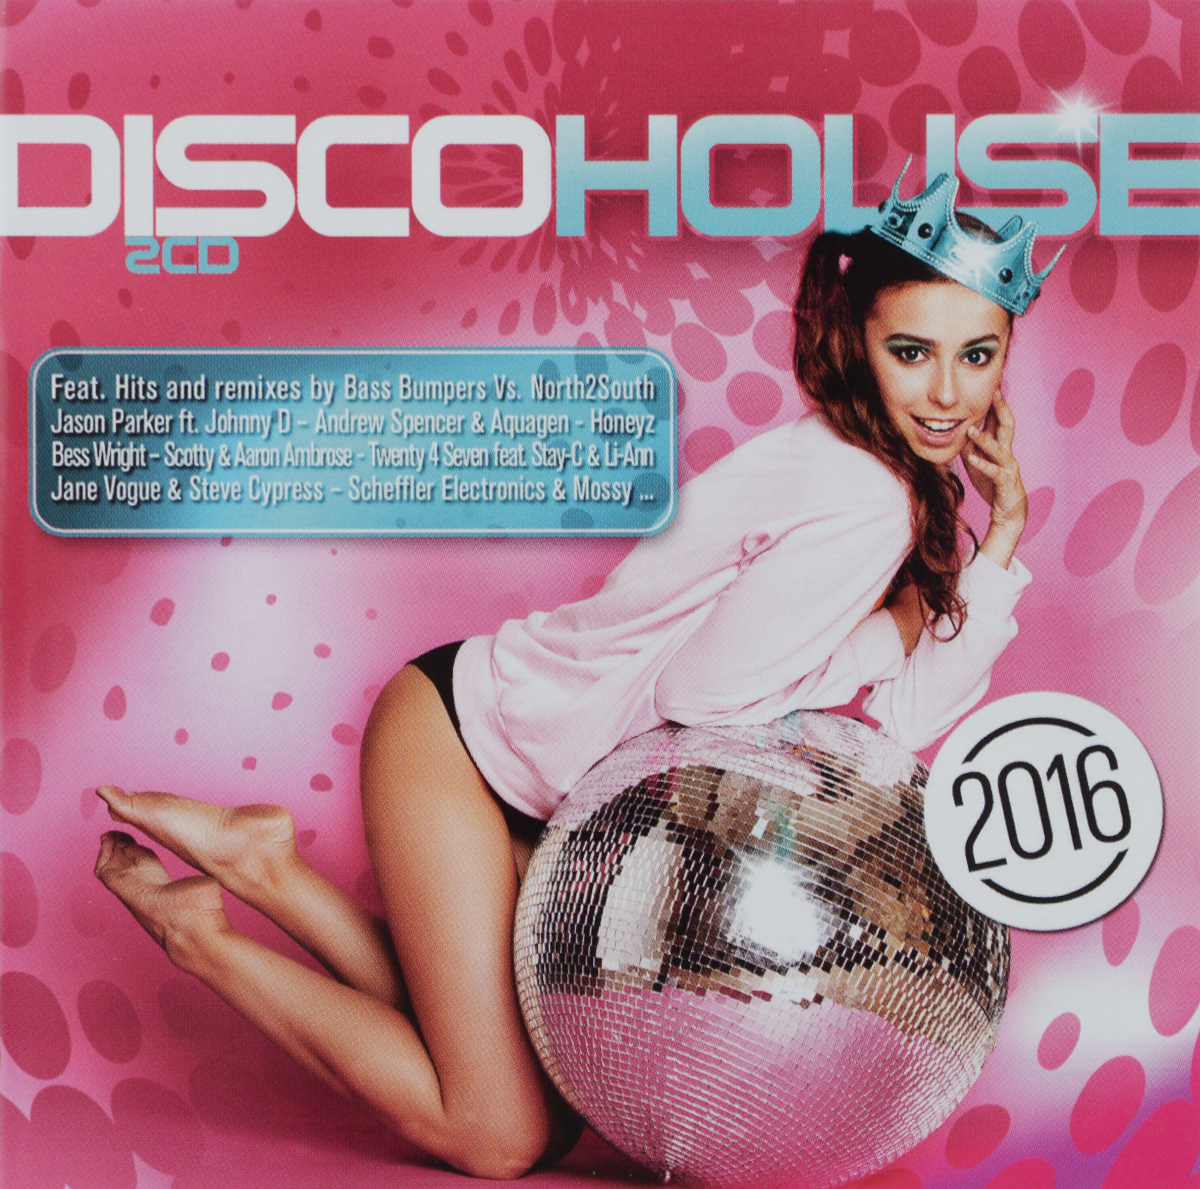 Zakazat.ru Disco House 2016 (2 CD)